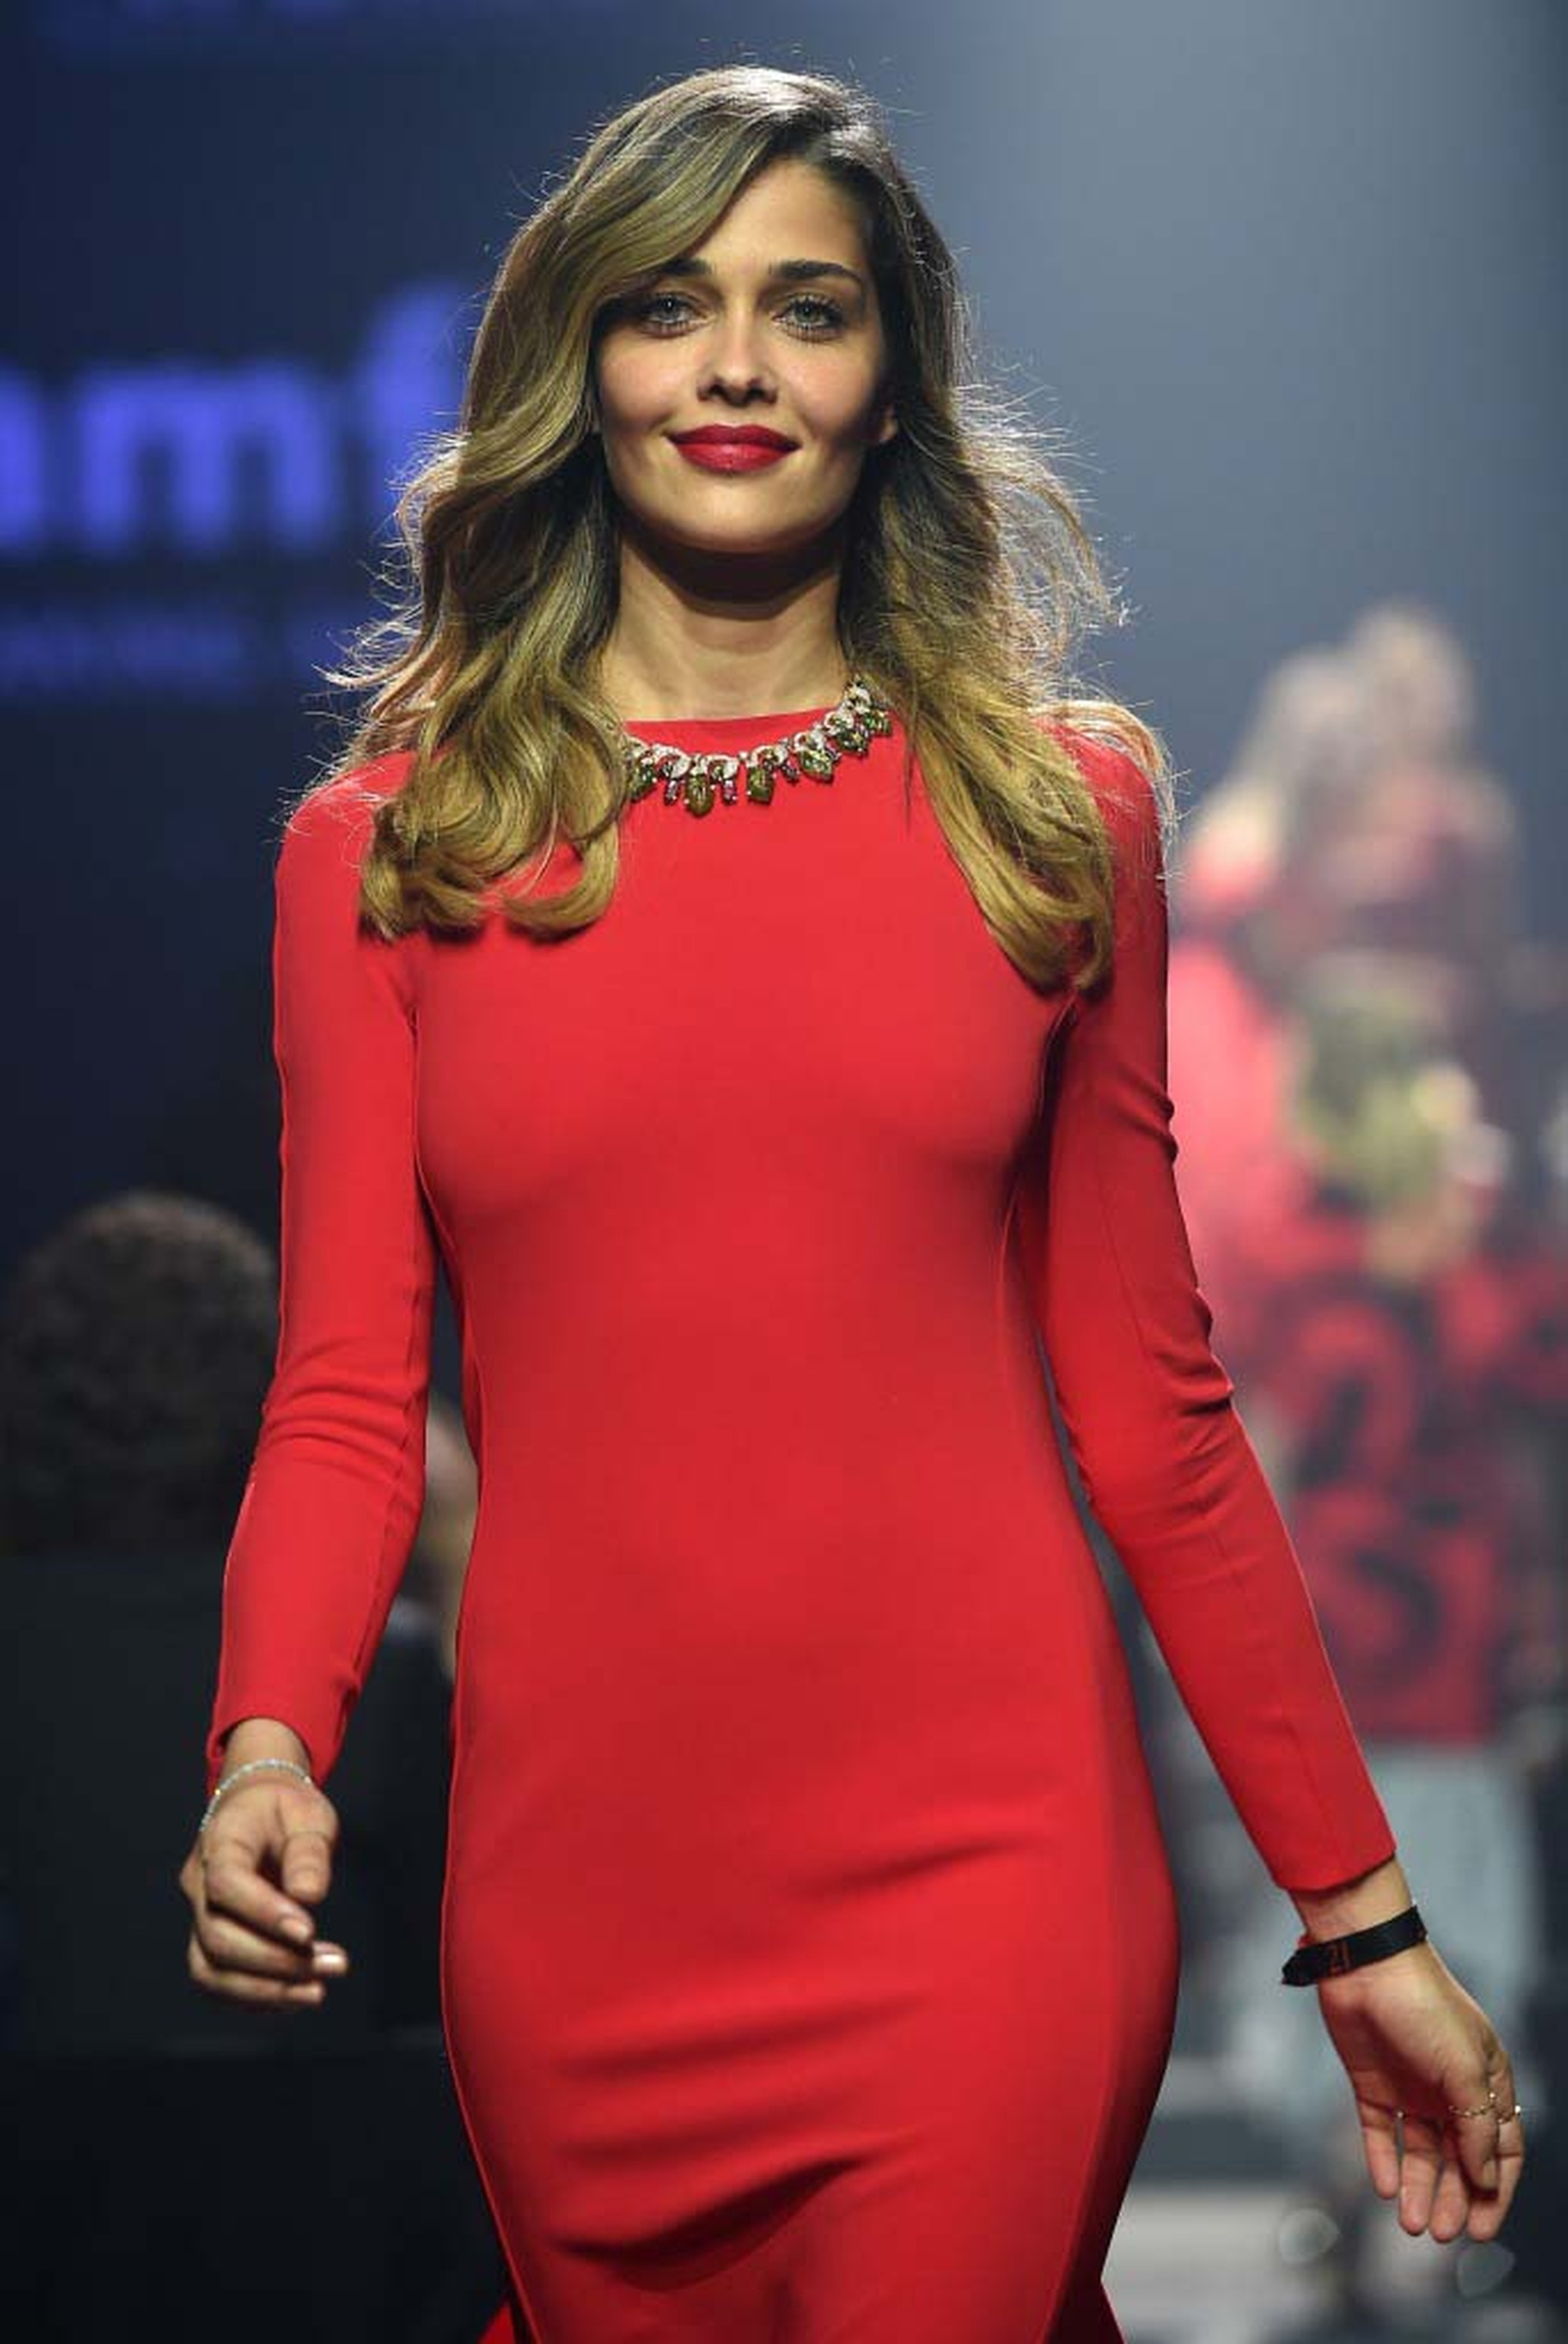 Lady in red Irina Shyak, wearing a one-of-a-kind Bulgari necklace, sauntered down the catwalk during the 2014 amfAR Charity Gala